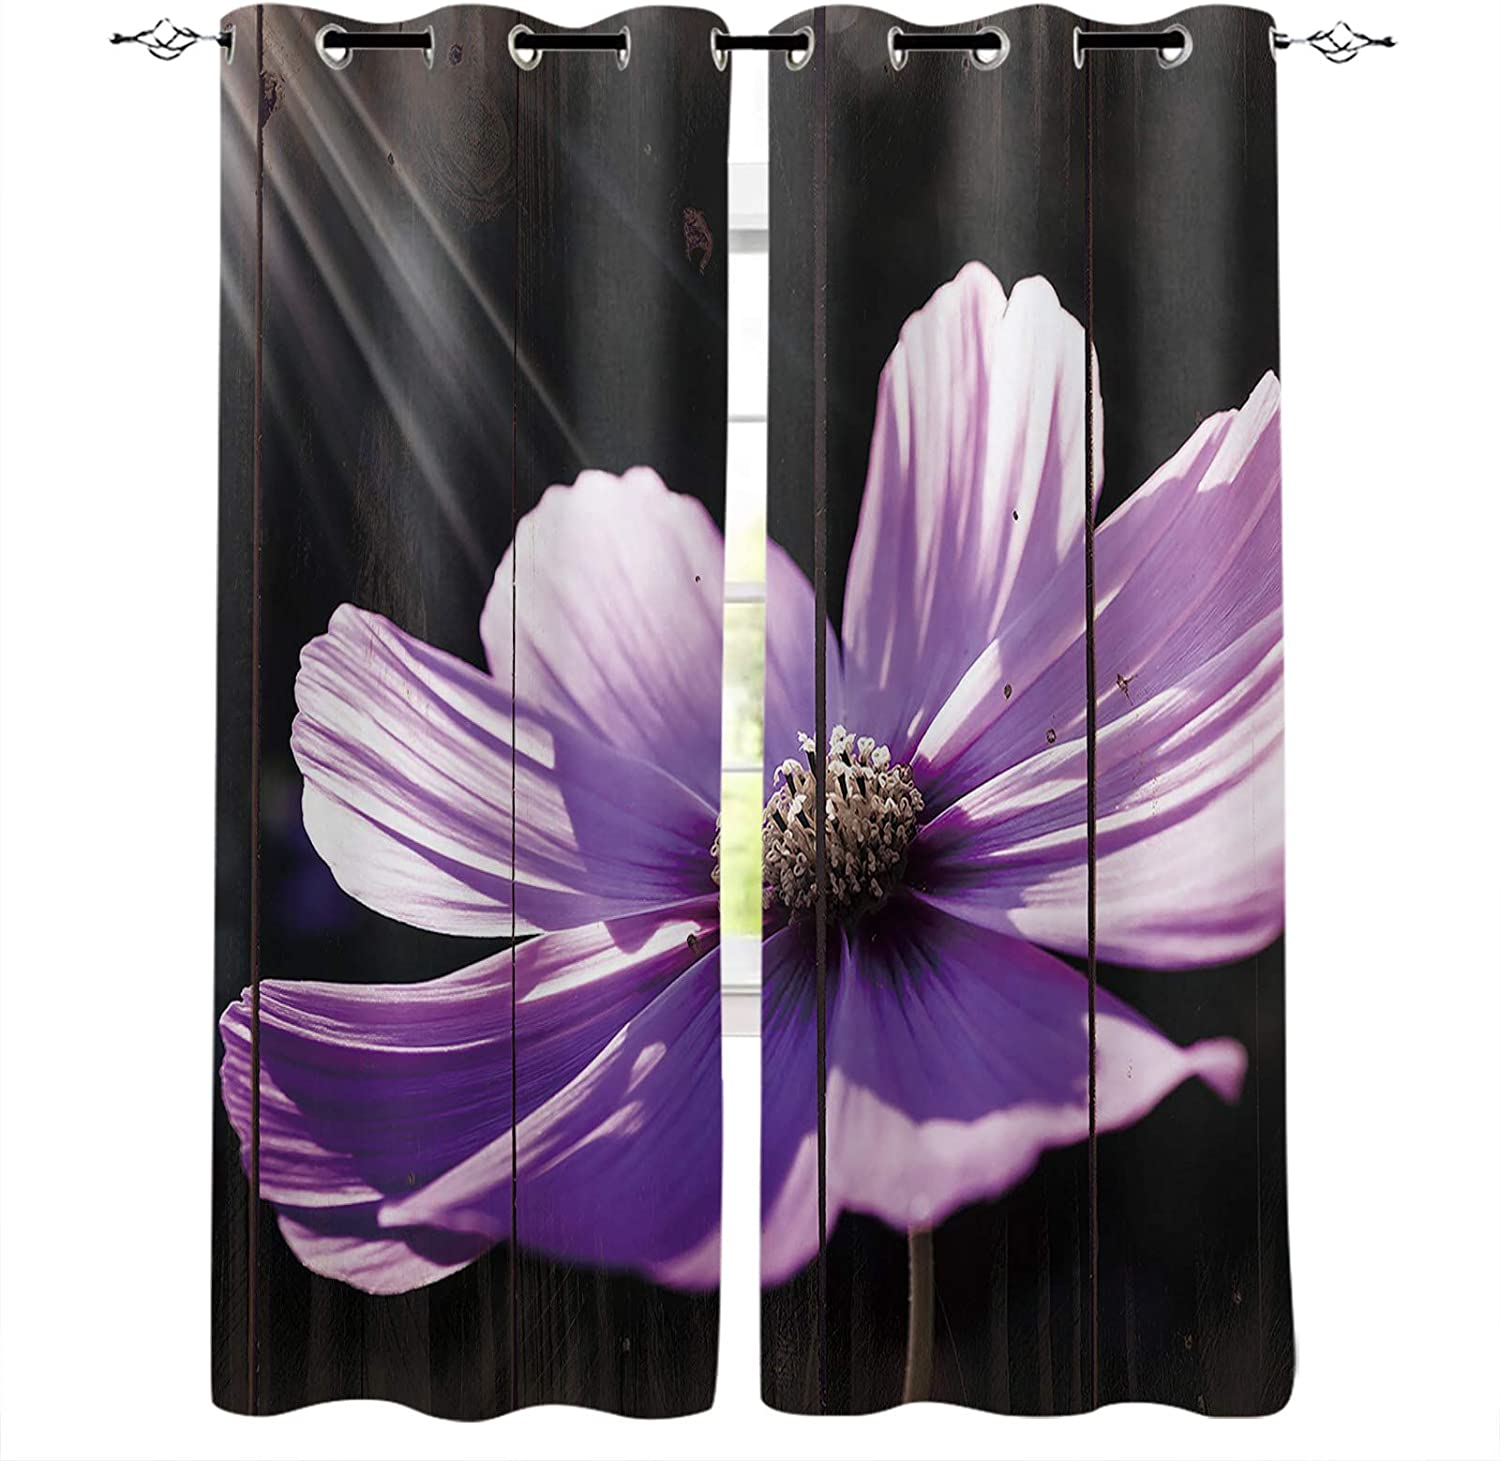 FortuneHouse8 Blackout Curtains Purple Flower Retro Easy-to-use Grain Cheap mail order specialty store Wood R